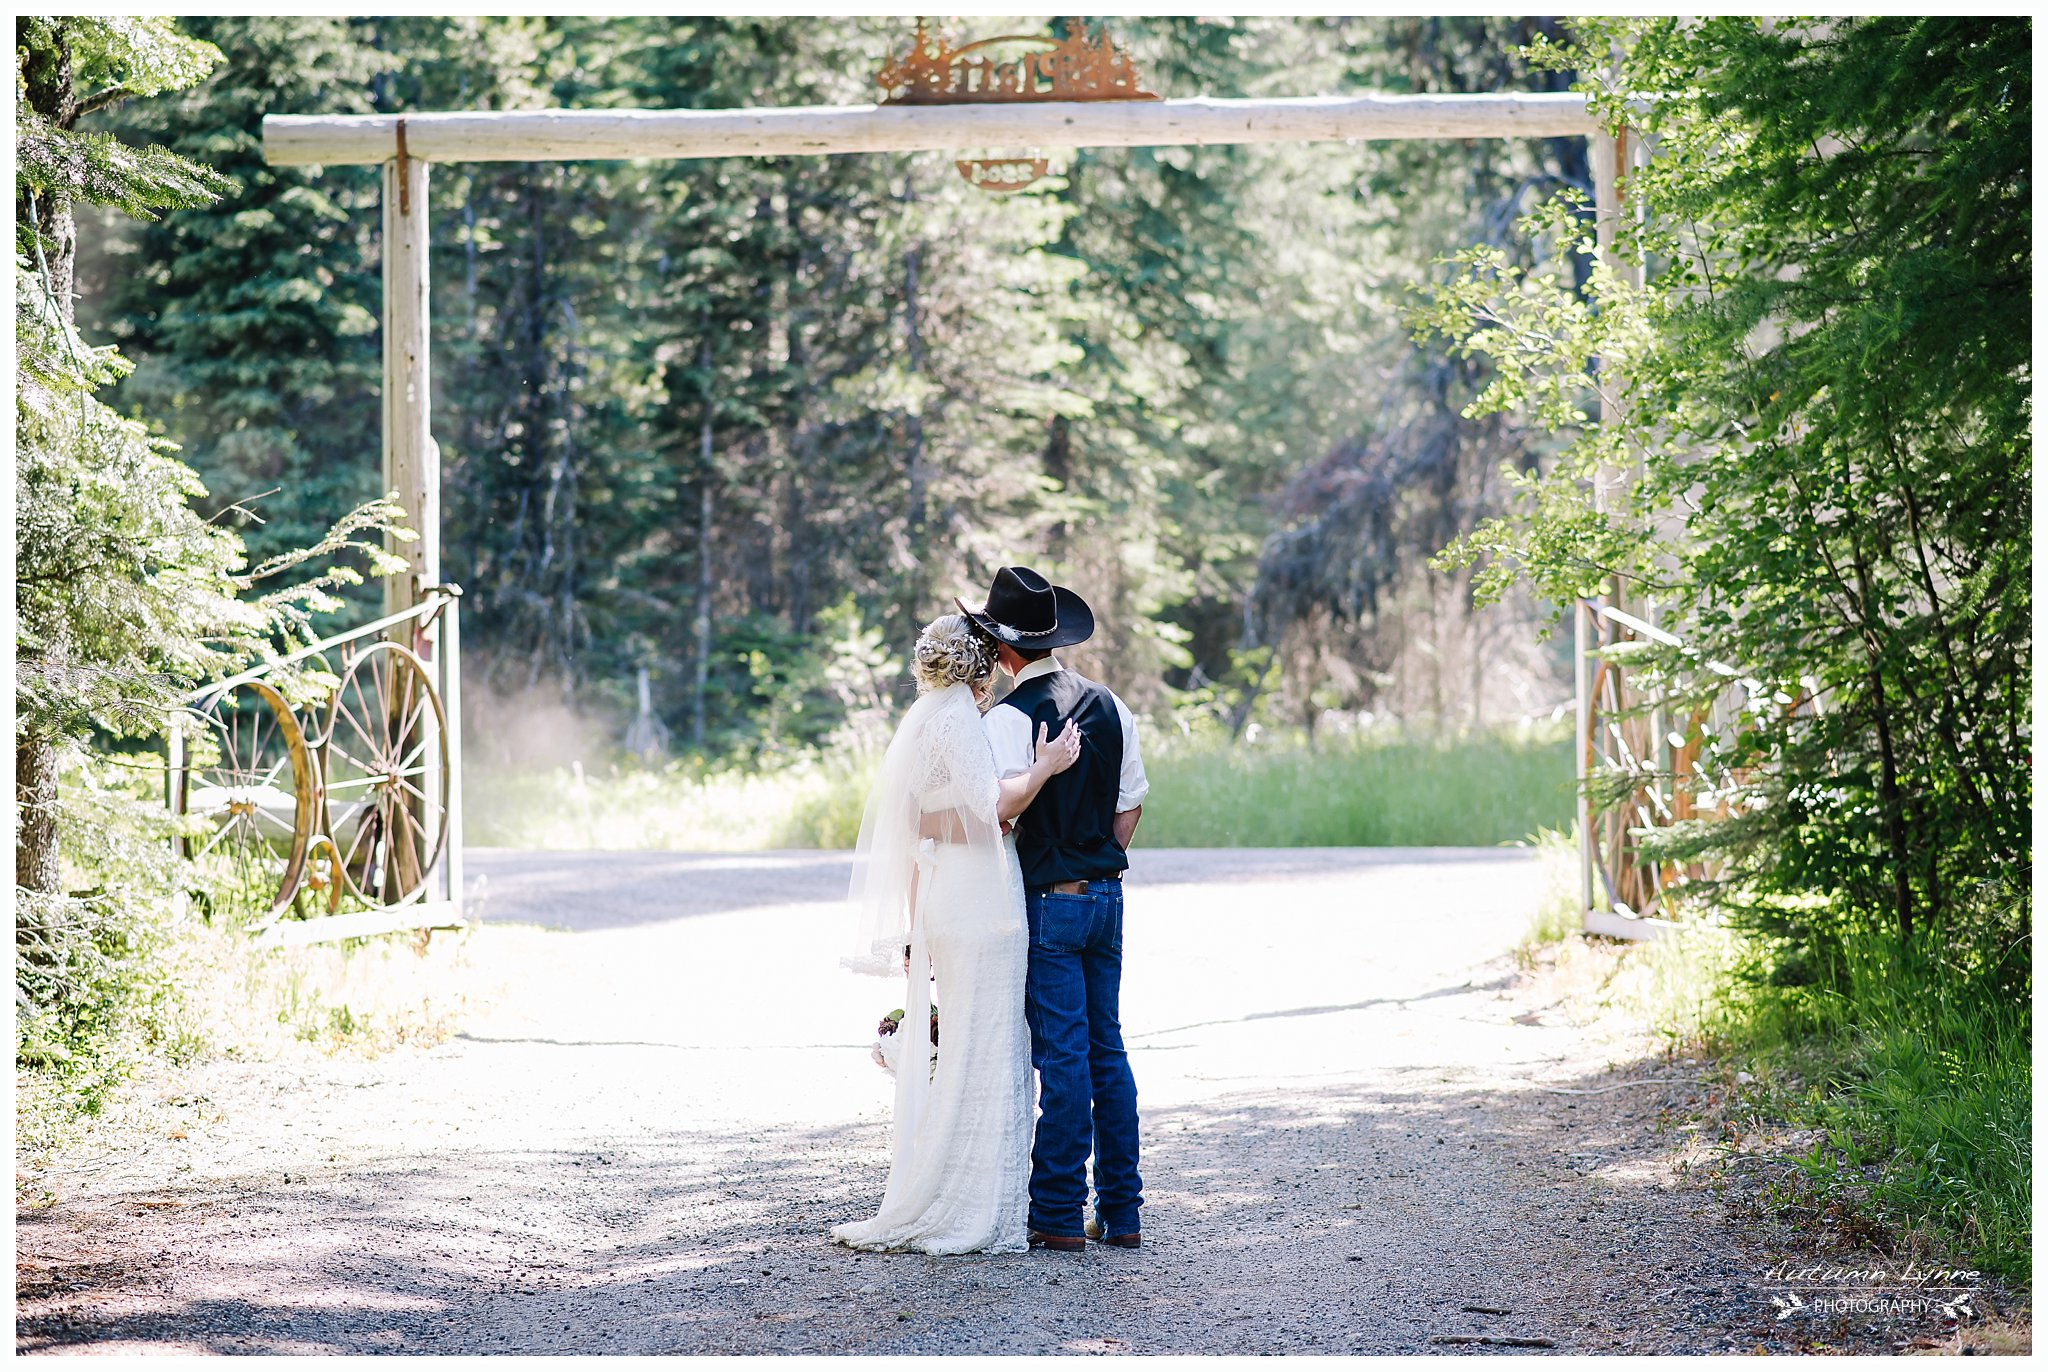 Donnelly Idaho Lake Wedding. Country and Cowboy themed. Love, romance and adventure photography for engaged and wedding couples.